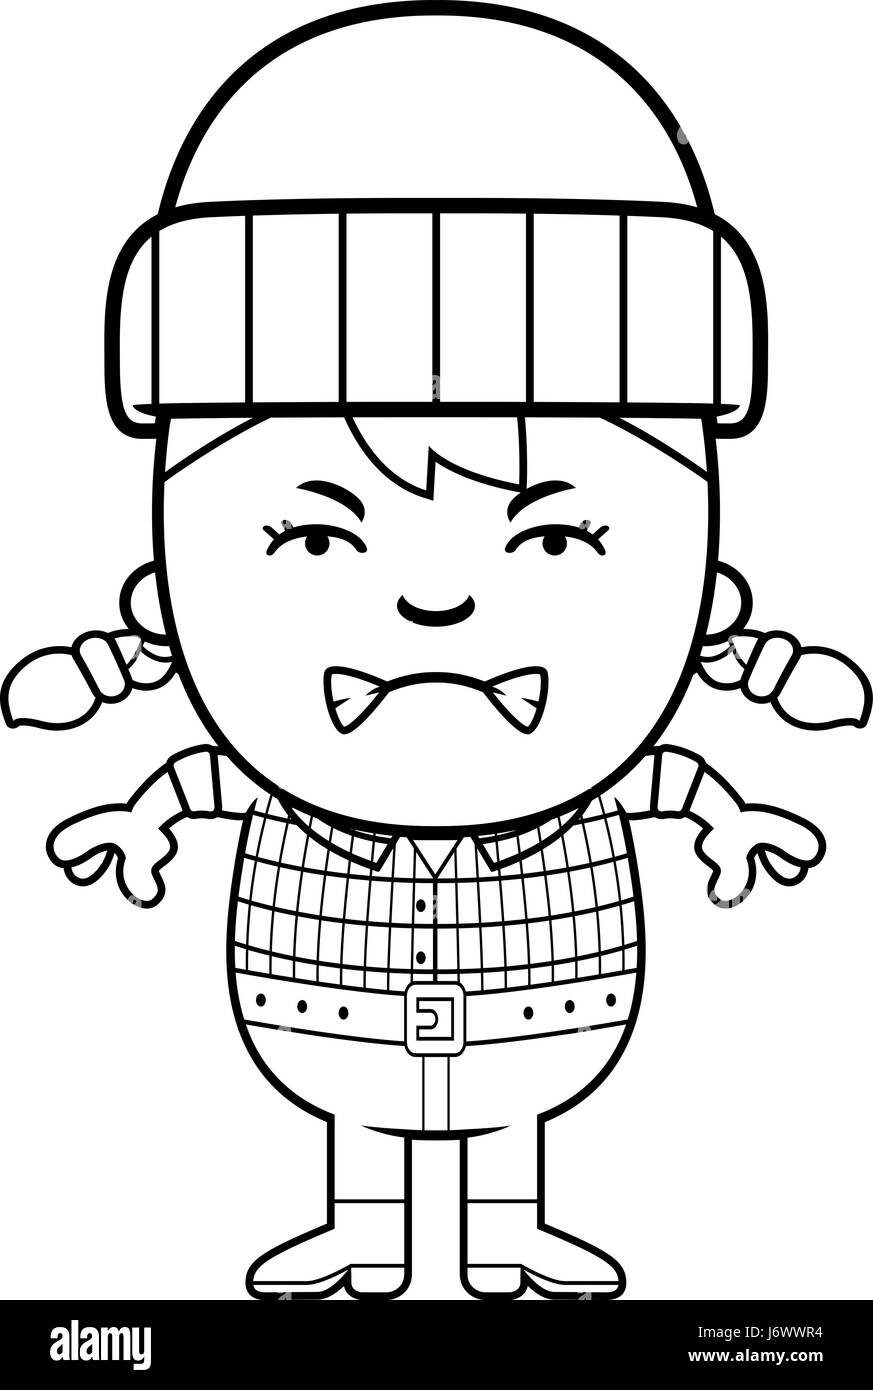 a cartoon illustration of a little lumberjack looking angry stock  a cartoon illustration of a little lumberjack looking angry